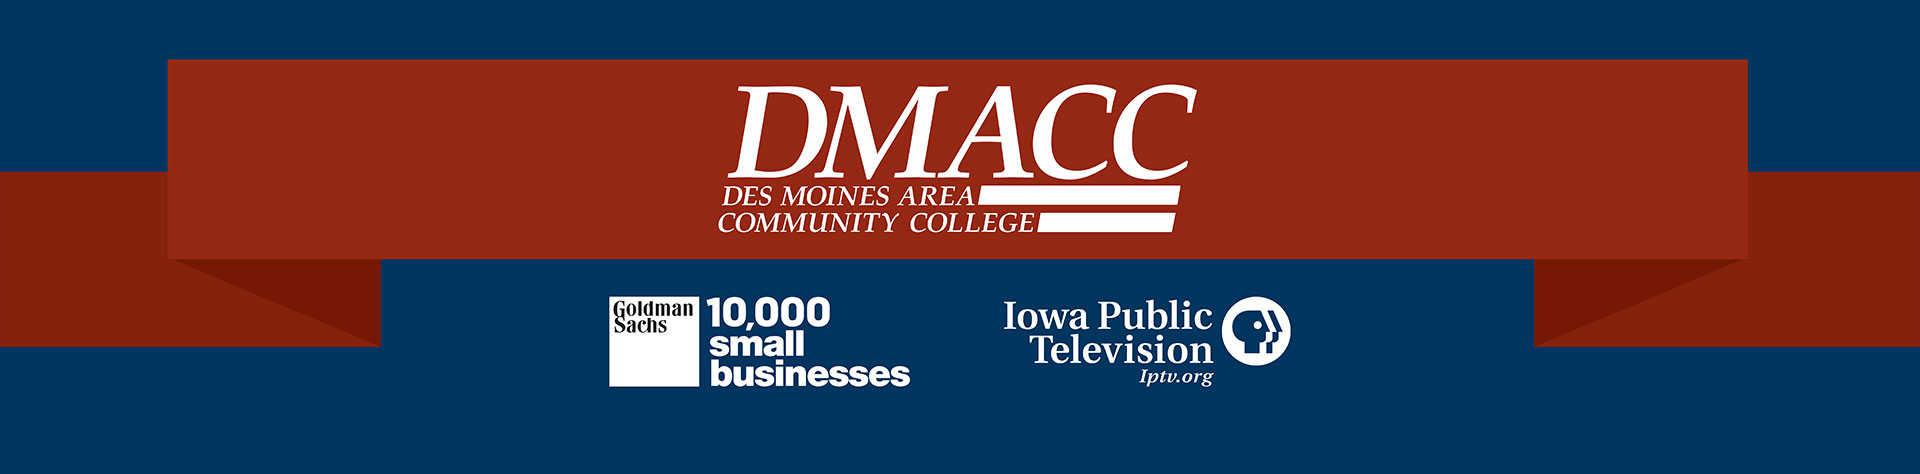 DMACC logo, Goldman Sachs logo 10,000 small businesses IPTV logo, IPTV.org